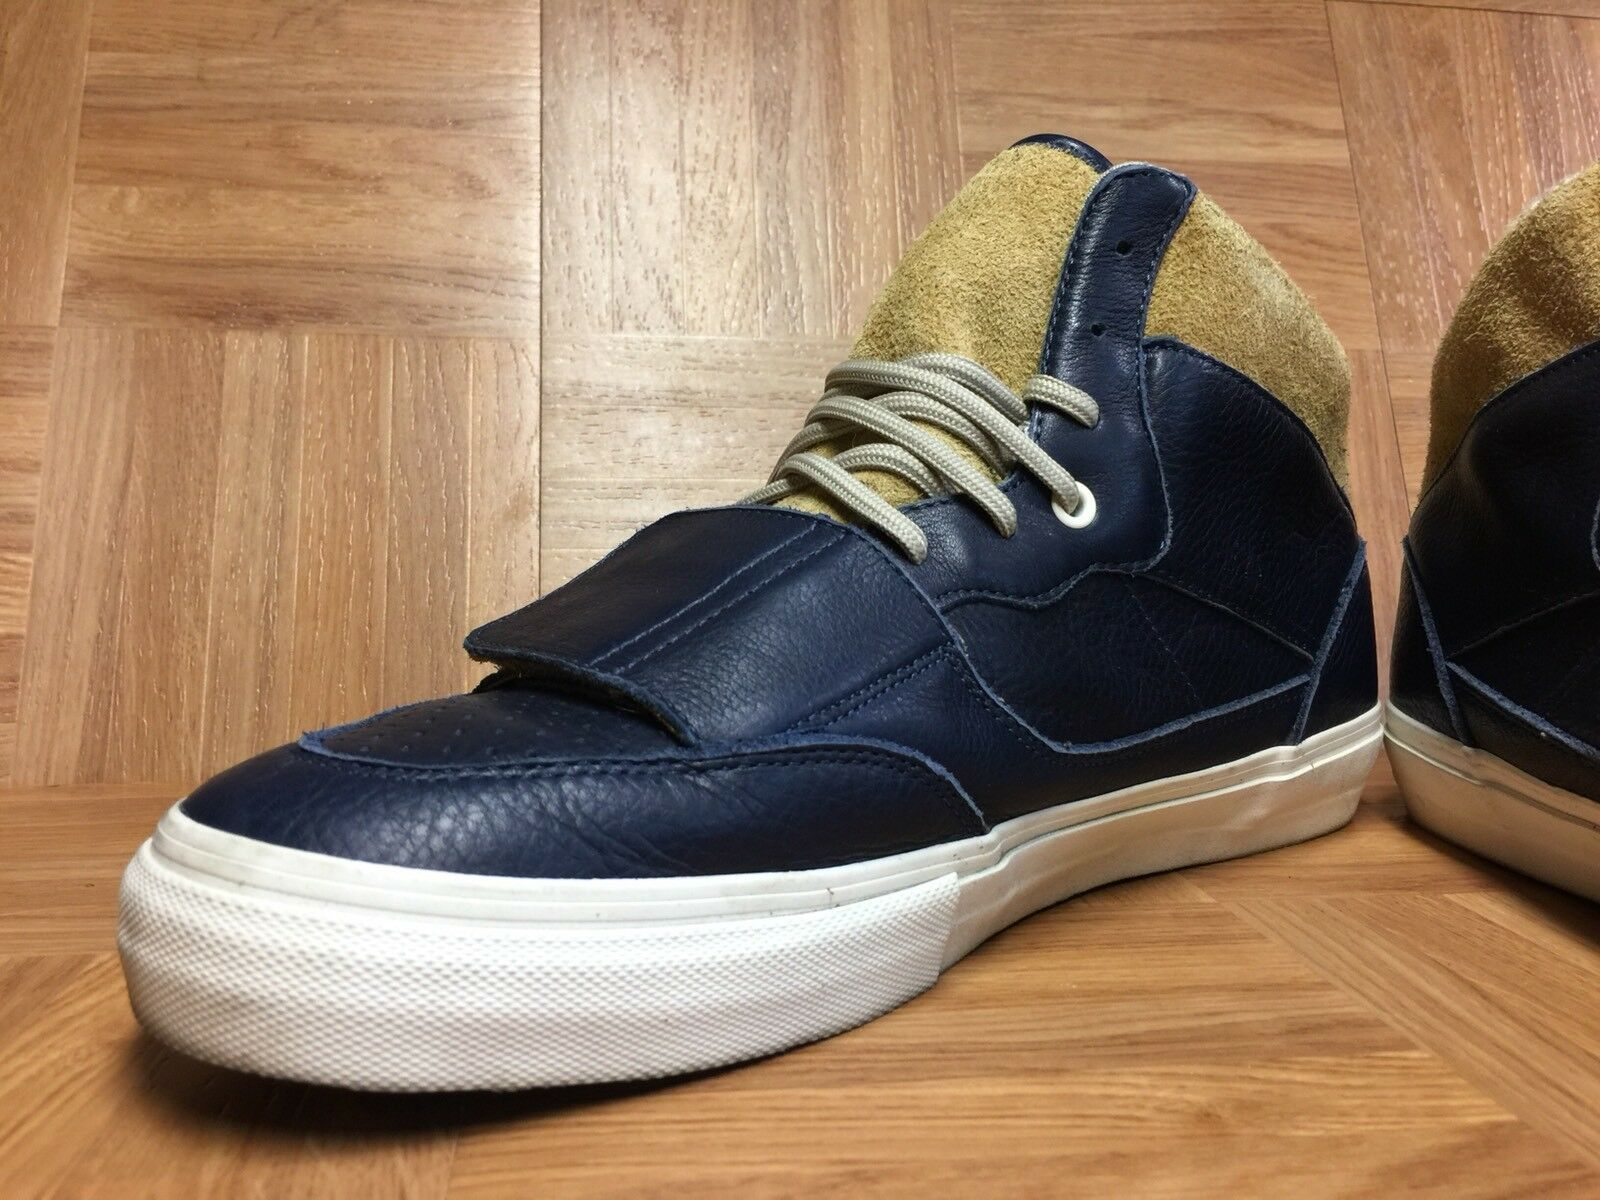 rare vans mt edition perf lx brown suede blue leather mountain edition sz 13 for sale online rare vans mt edition perf lx brown suede blue leather mountain edition sz 13